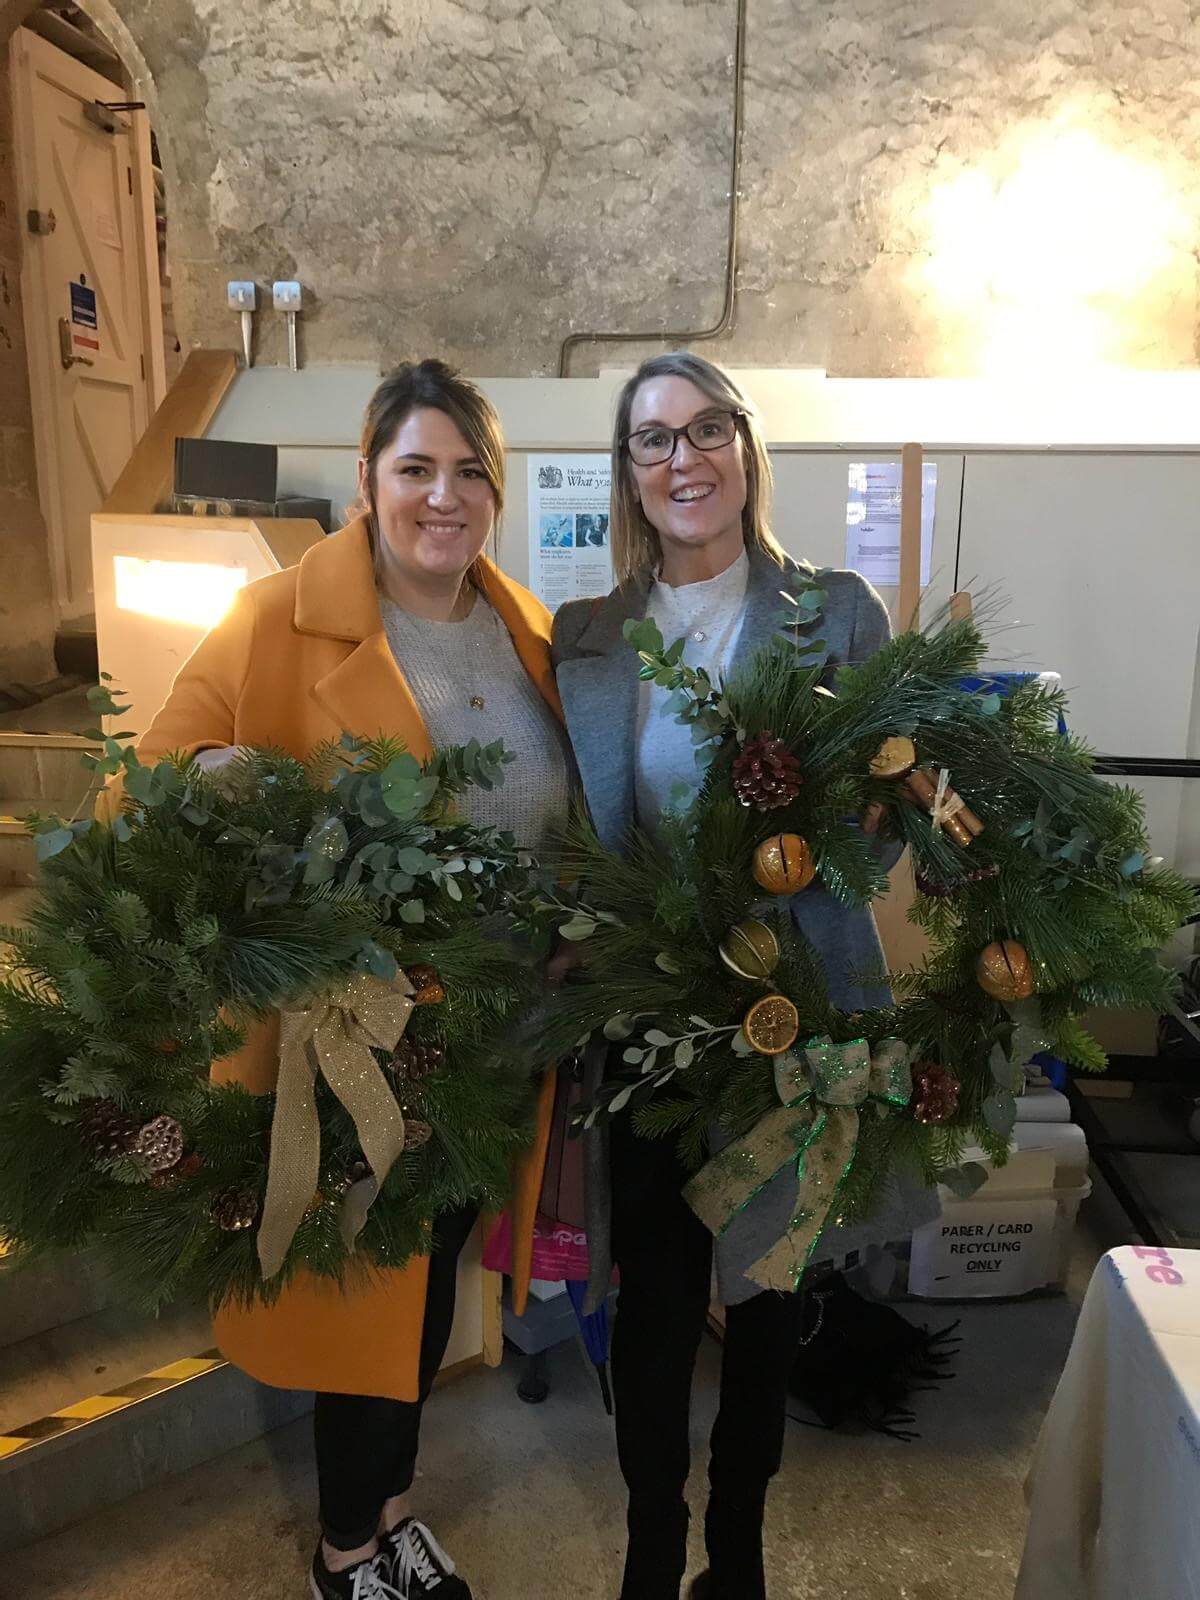 Christmas Wreath Making Workshop Ely Cambridgeshire 2nd December (7).jpg